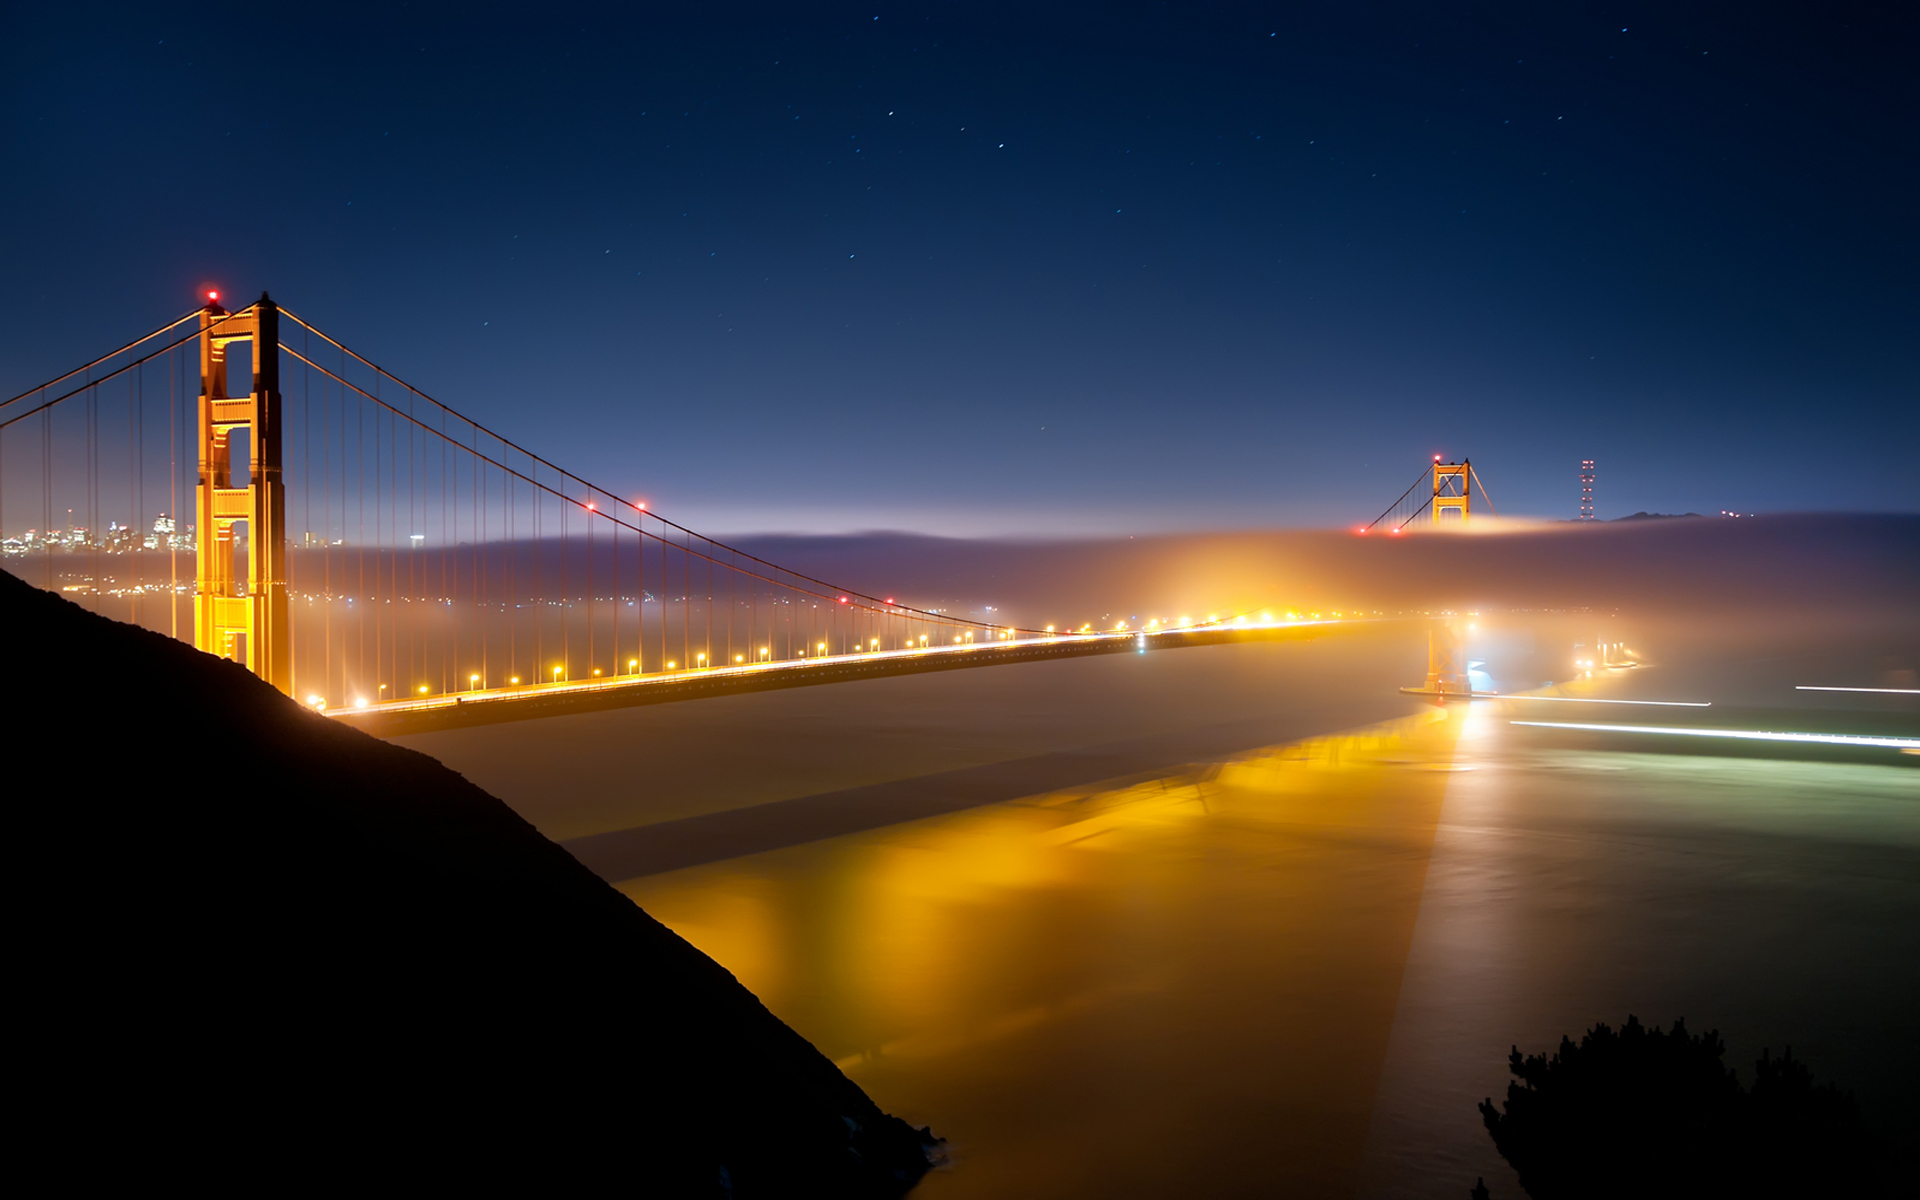 Golden Gate Bridge Fog Wallpapers High Quality Resolution